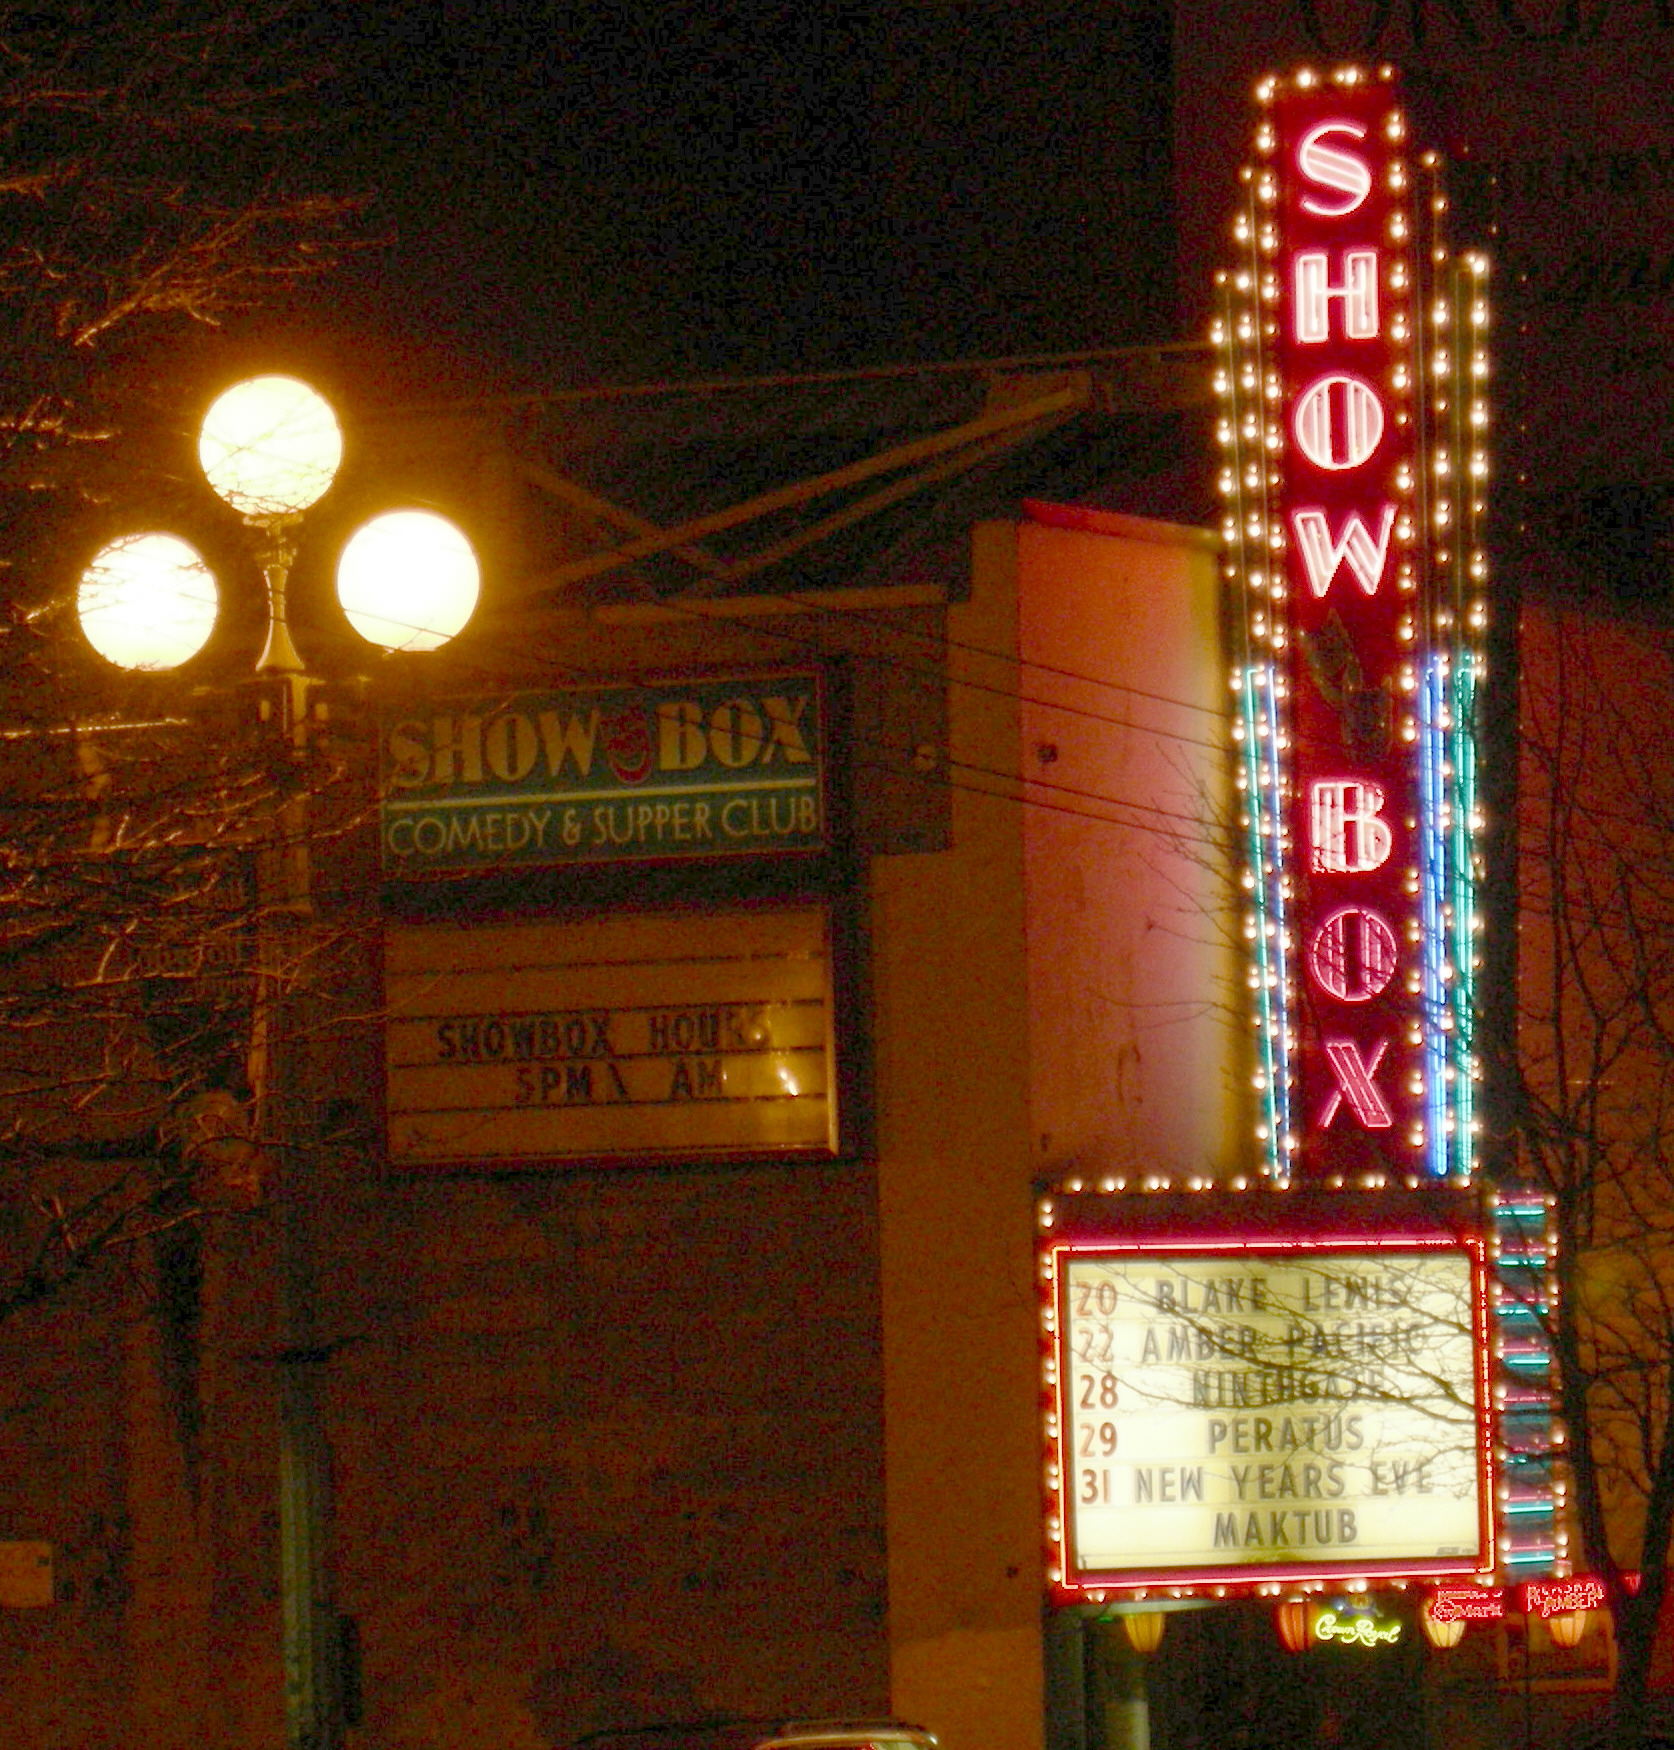 File:Seattle - Showbox marquee 01.jpg - Wikimedia Commons on open head, open book, open desk, open lock, open love, open bar, open door, open jar, open car, open package, open game, open bottle, open chest, open frame, open gift, open container, open toolbox, open square, open cabinet, open can,